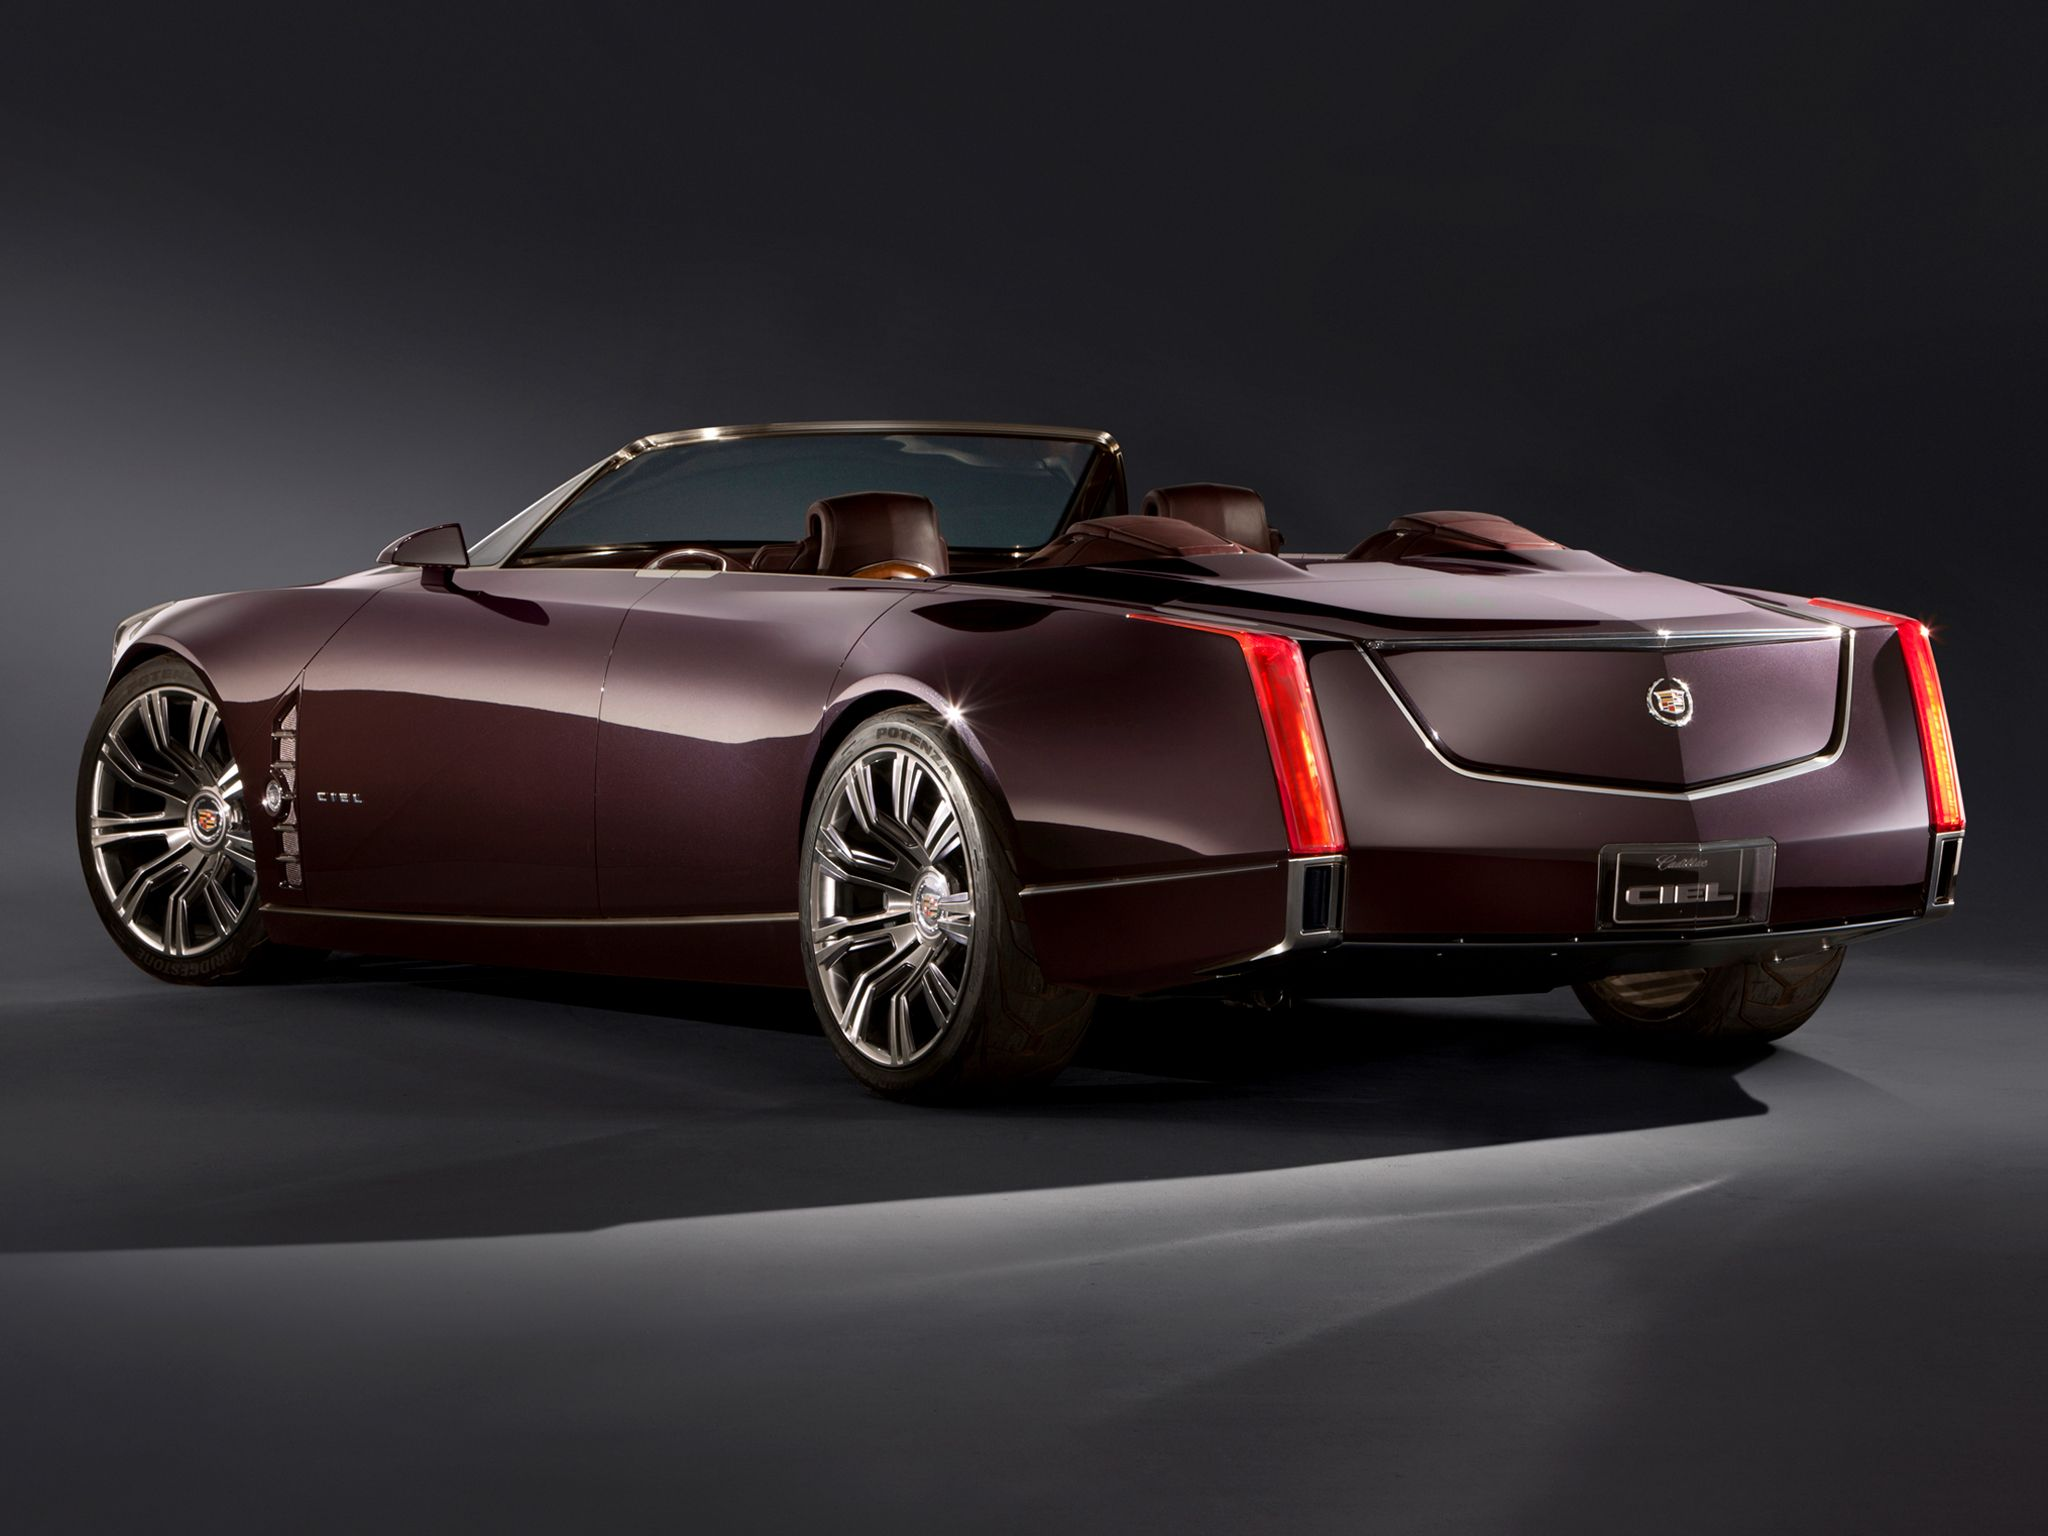 Cadillac xlr 2013 cadillac xlr cadillac pinterest cadillac cars and dream cars